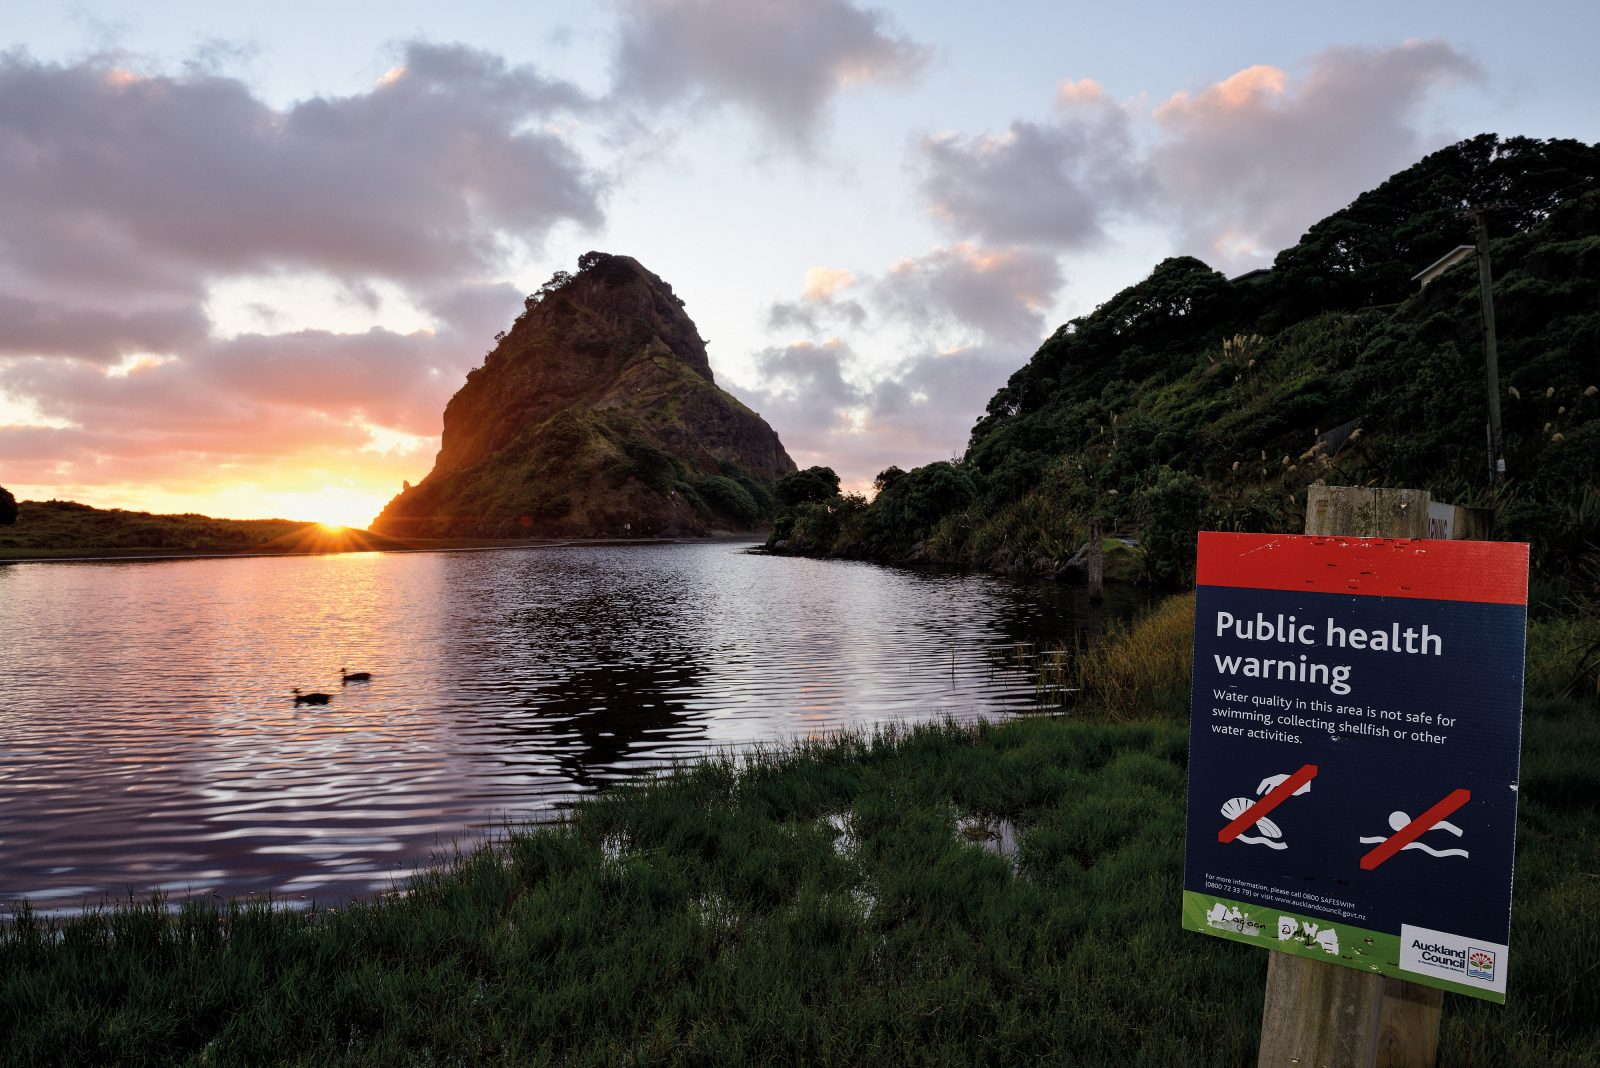 A bucolic scene belies a bacterial menace at a lagoon behind the famous surf beach of Piha. In remote beach communities, the main threat to swimmability is leaking septic tanks. The council is trialling a scheme to lend money to homeowners to upgrade or replace their sewage systems.